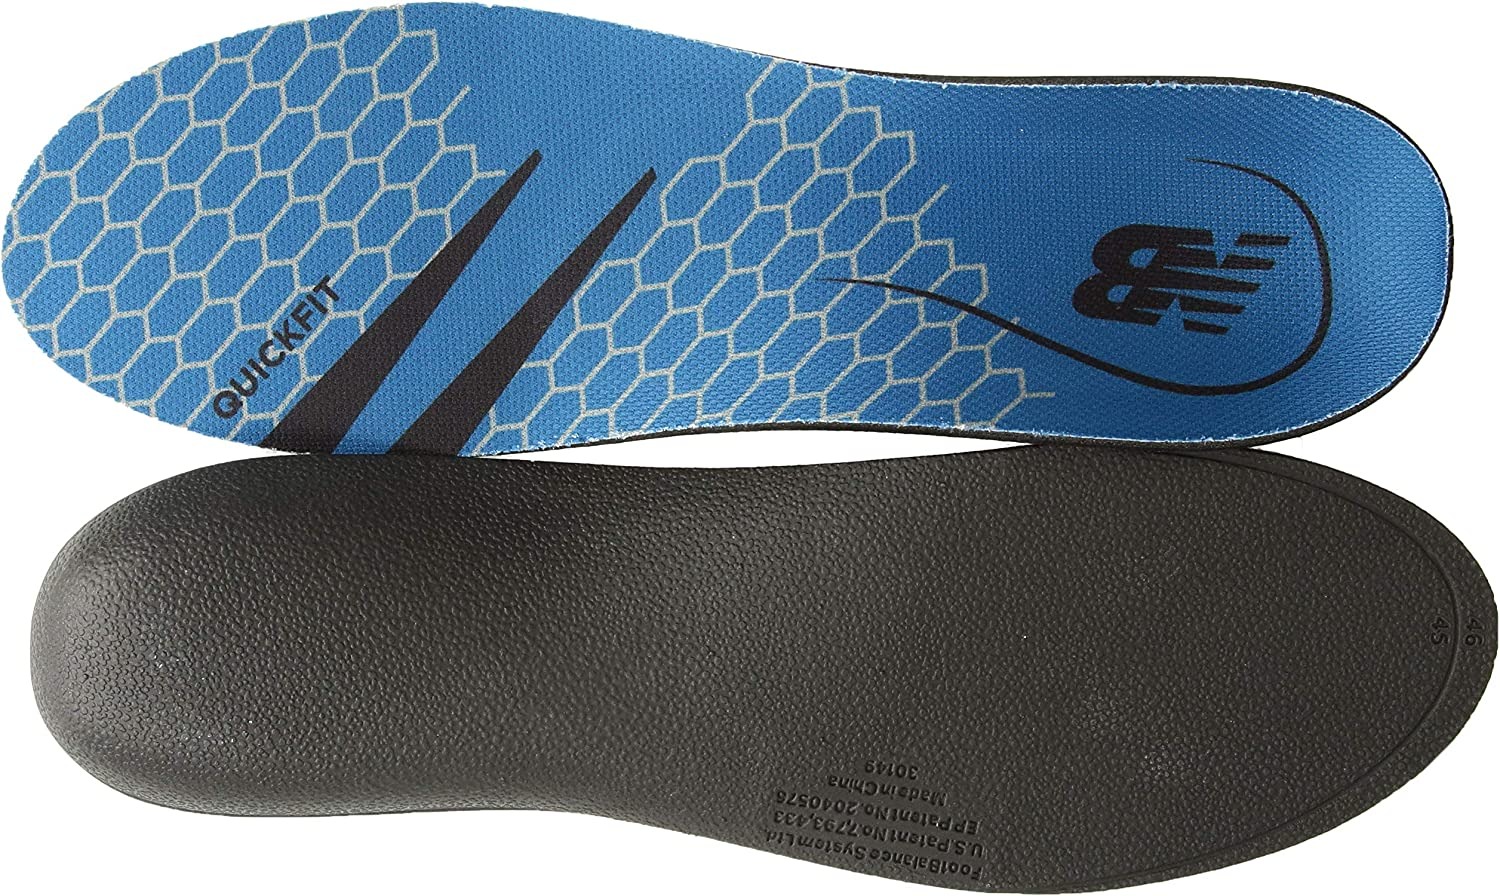 New Balance Arch Stability 3720 Performance Insoles Arch Support Orthotic Insert